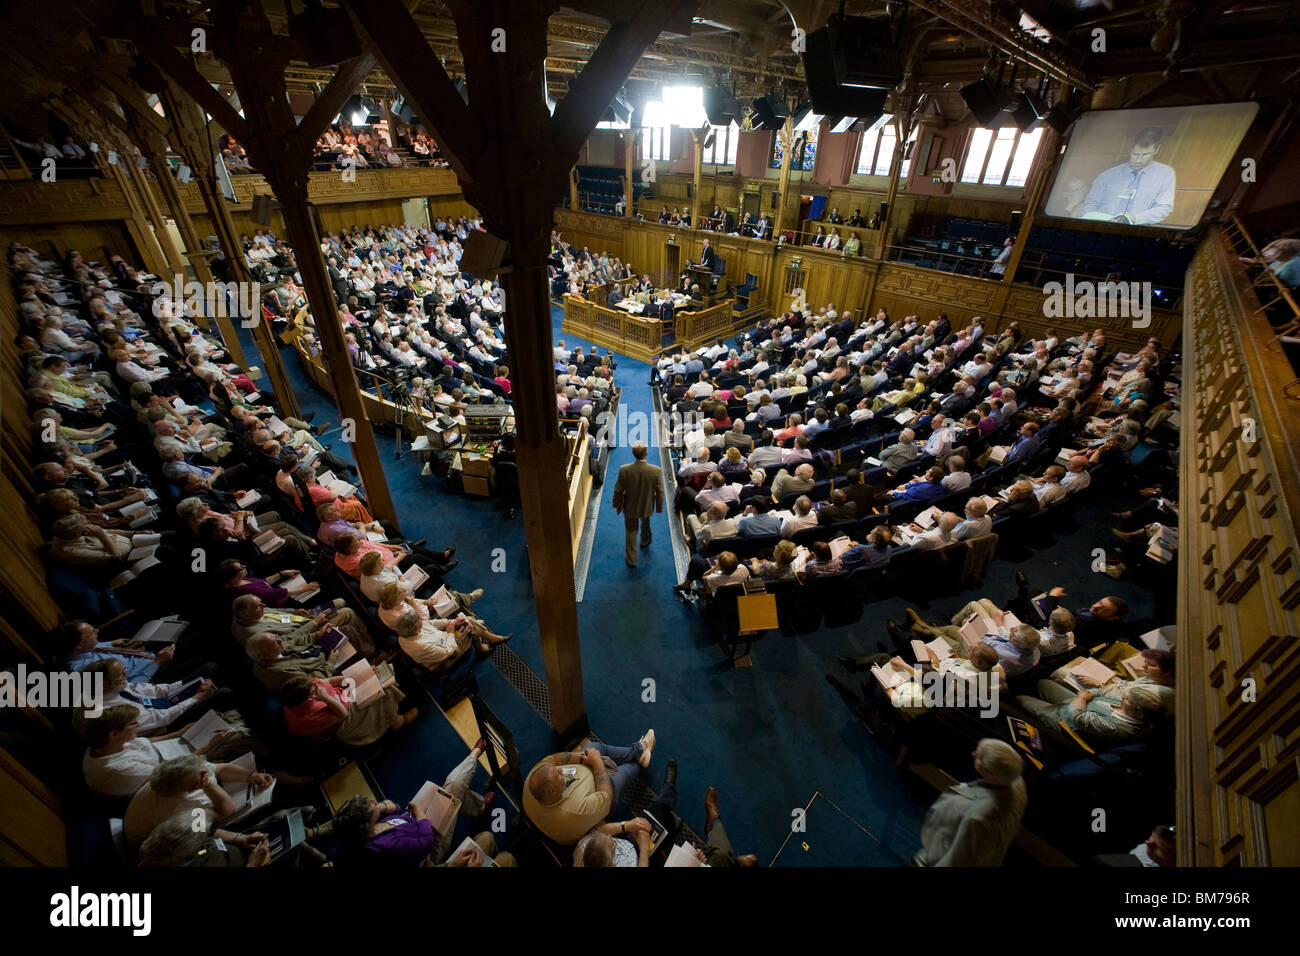 Inside Assembly Hall during a session of The General Assembly of the Church of Scotland 2010. - Stock Image